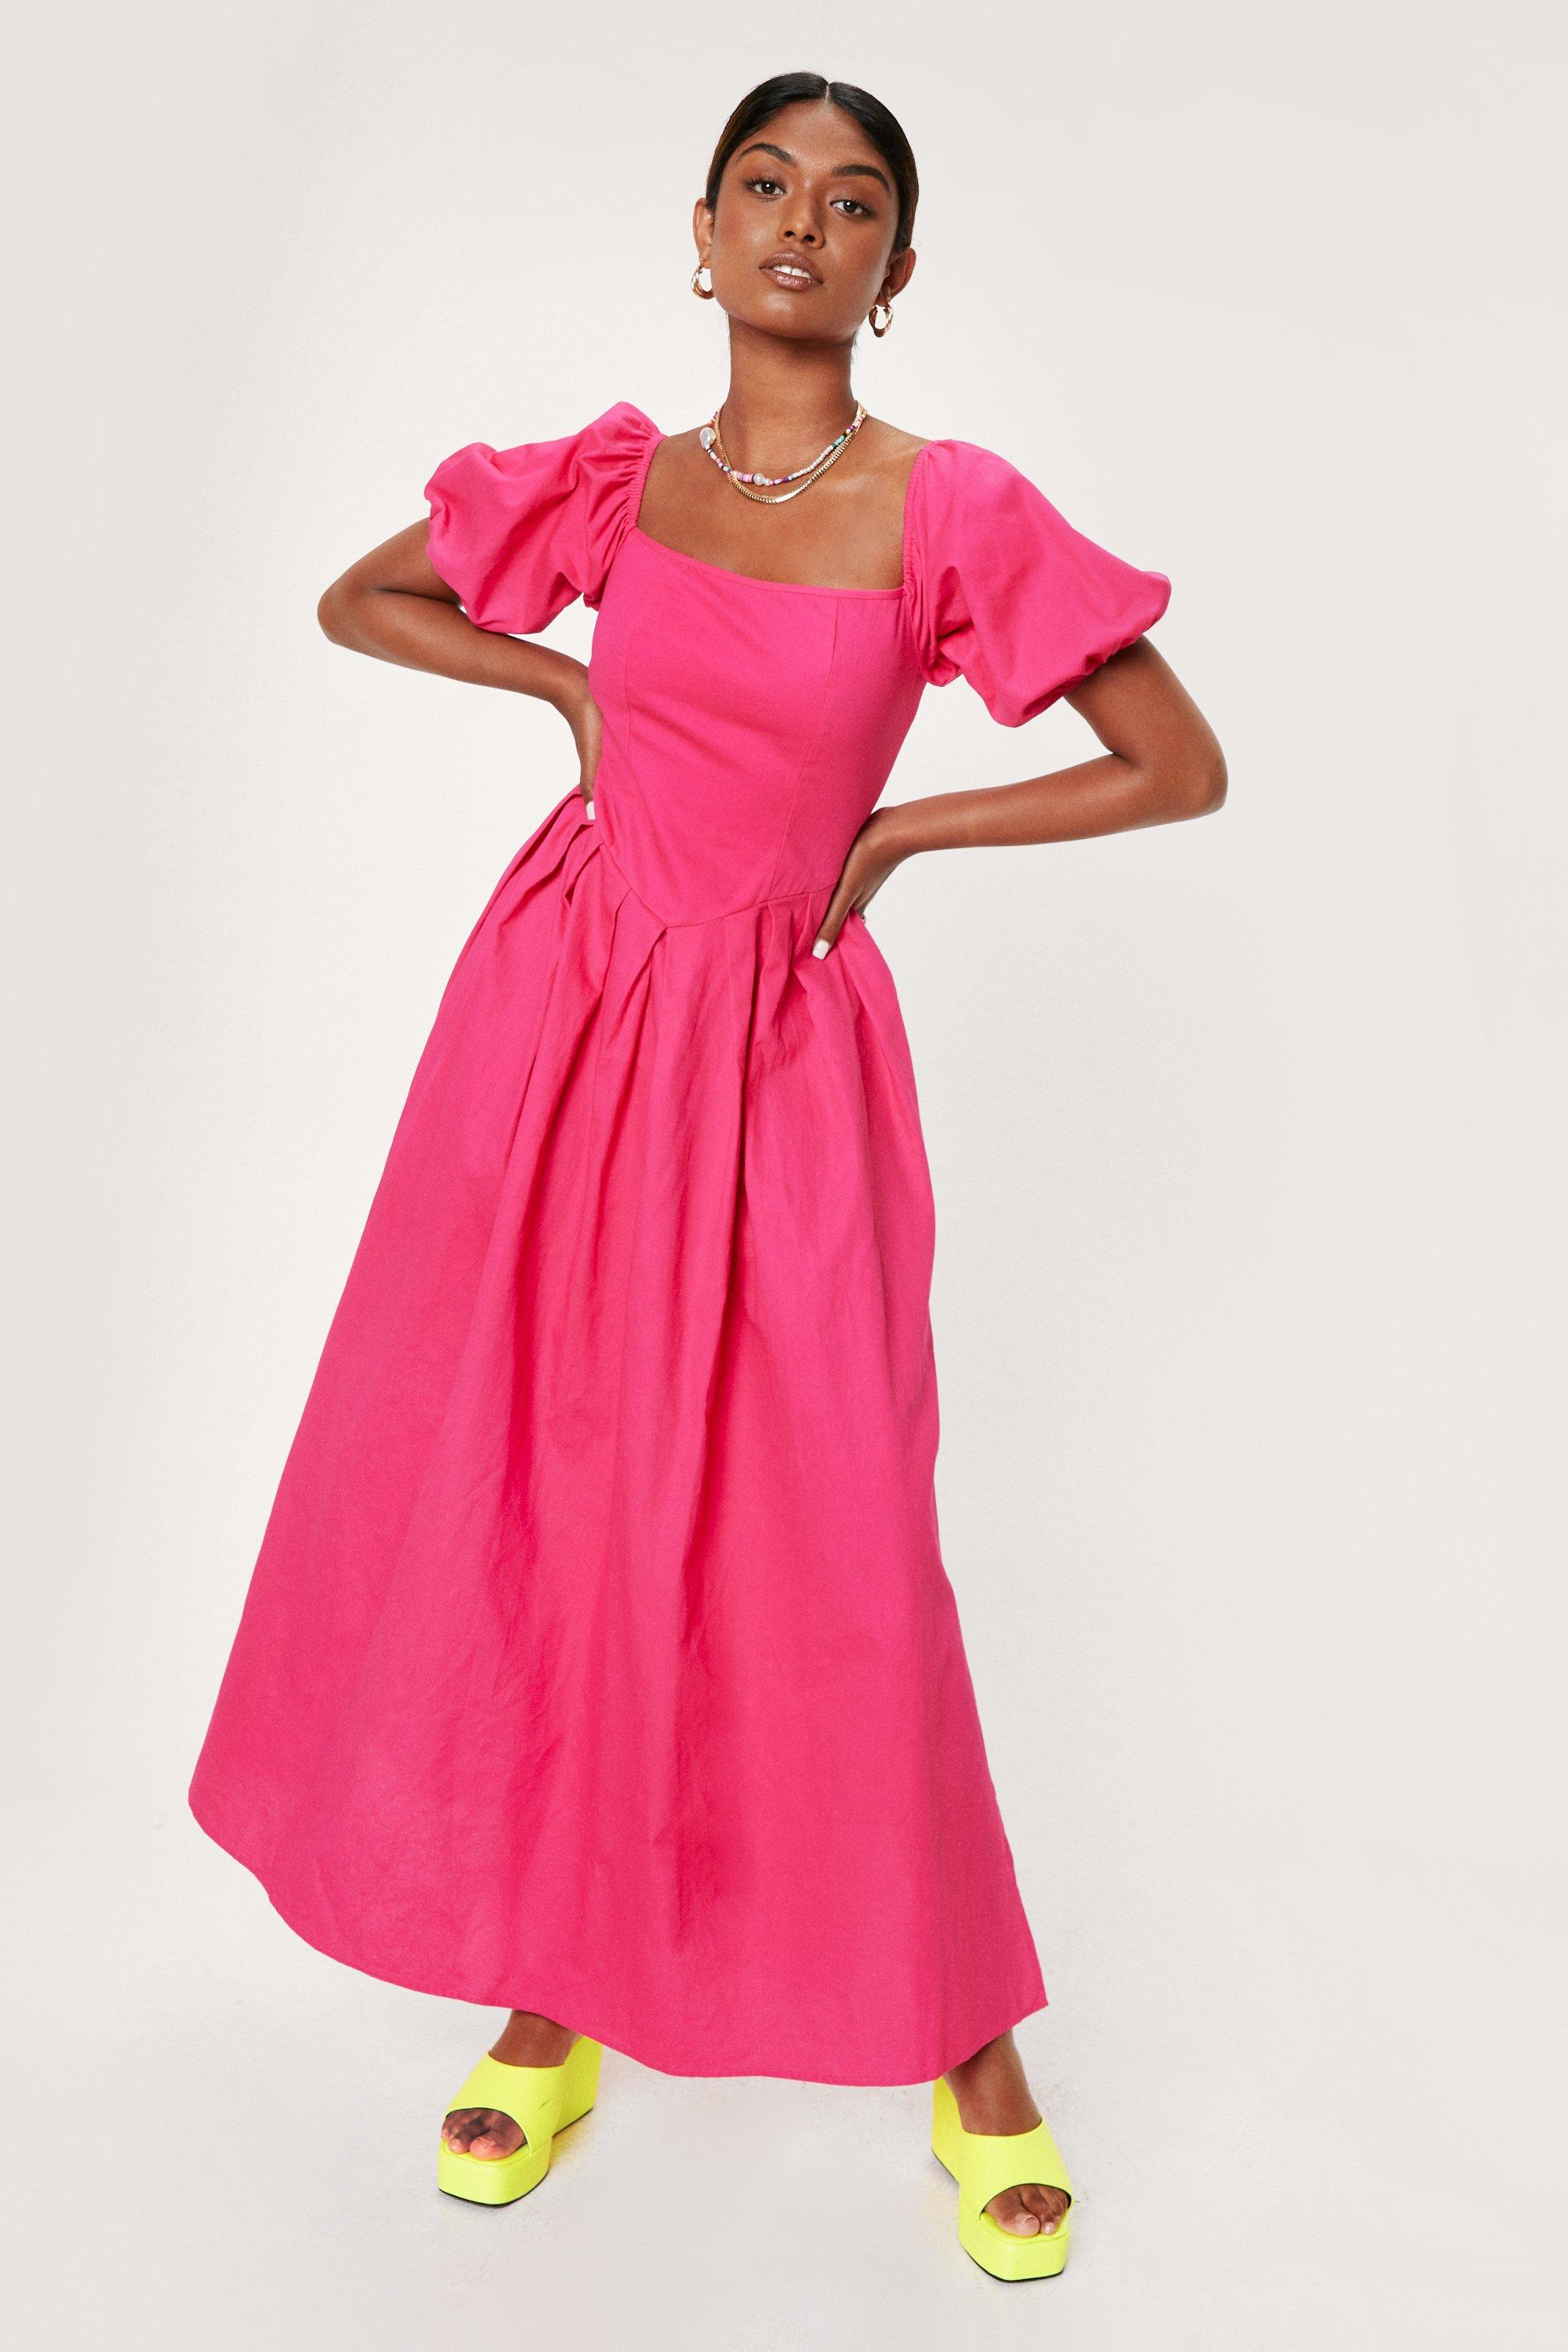 1980s Clothing, Fashion | 80s Style Clothes Womens Puff Sleeve Drop Waist Maxi Dress - Hot Pink - 8 $34.00 AT vintagedancer.com